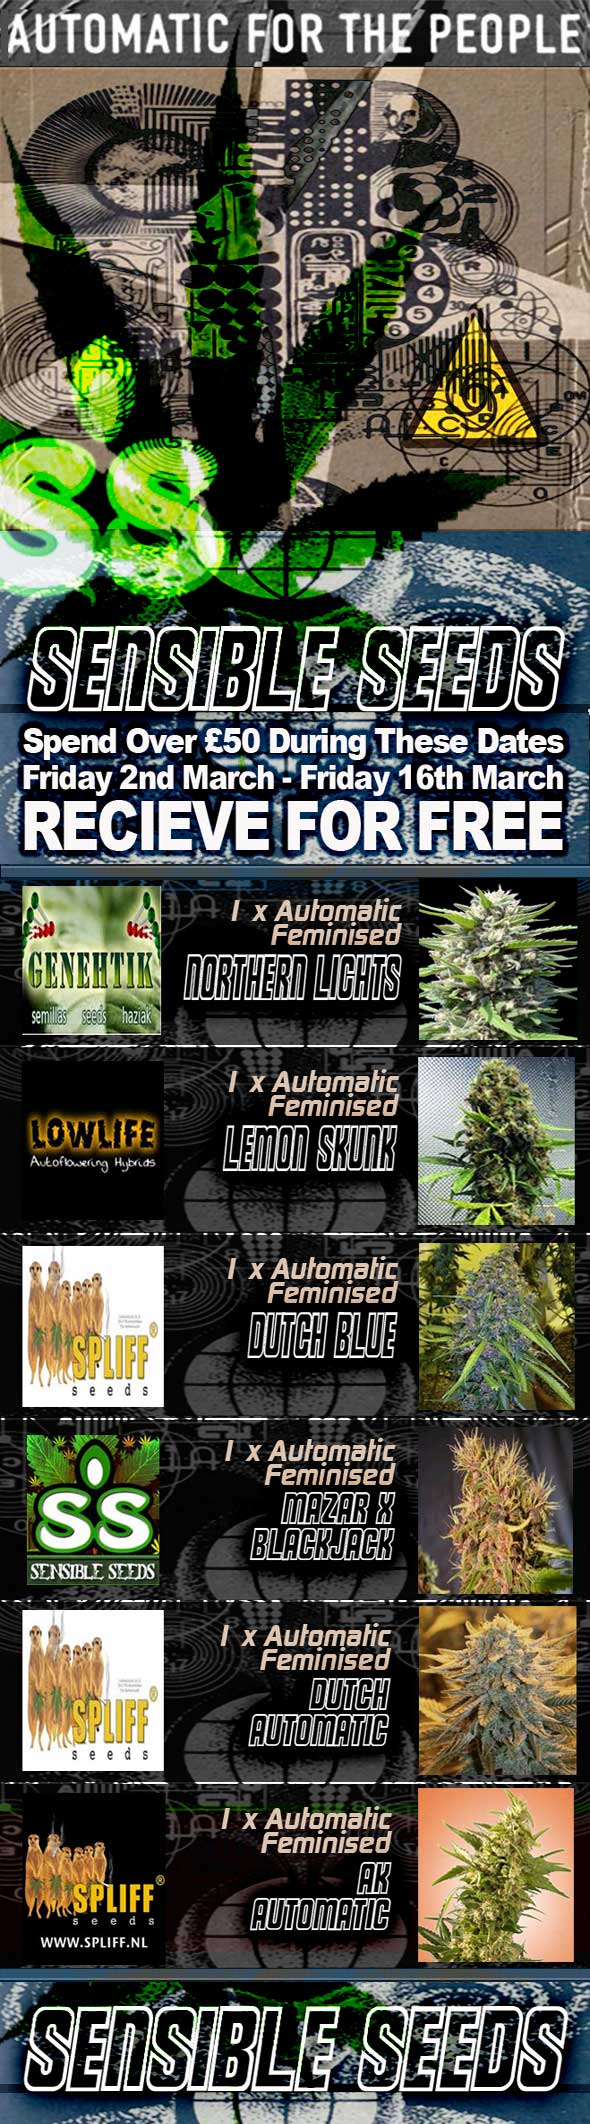 Sensible-seed-Autoflower-March-offer